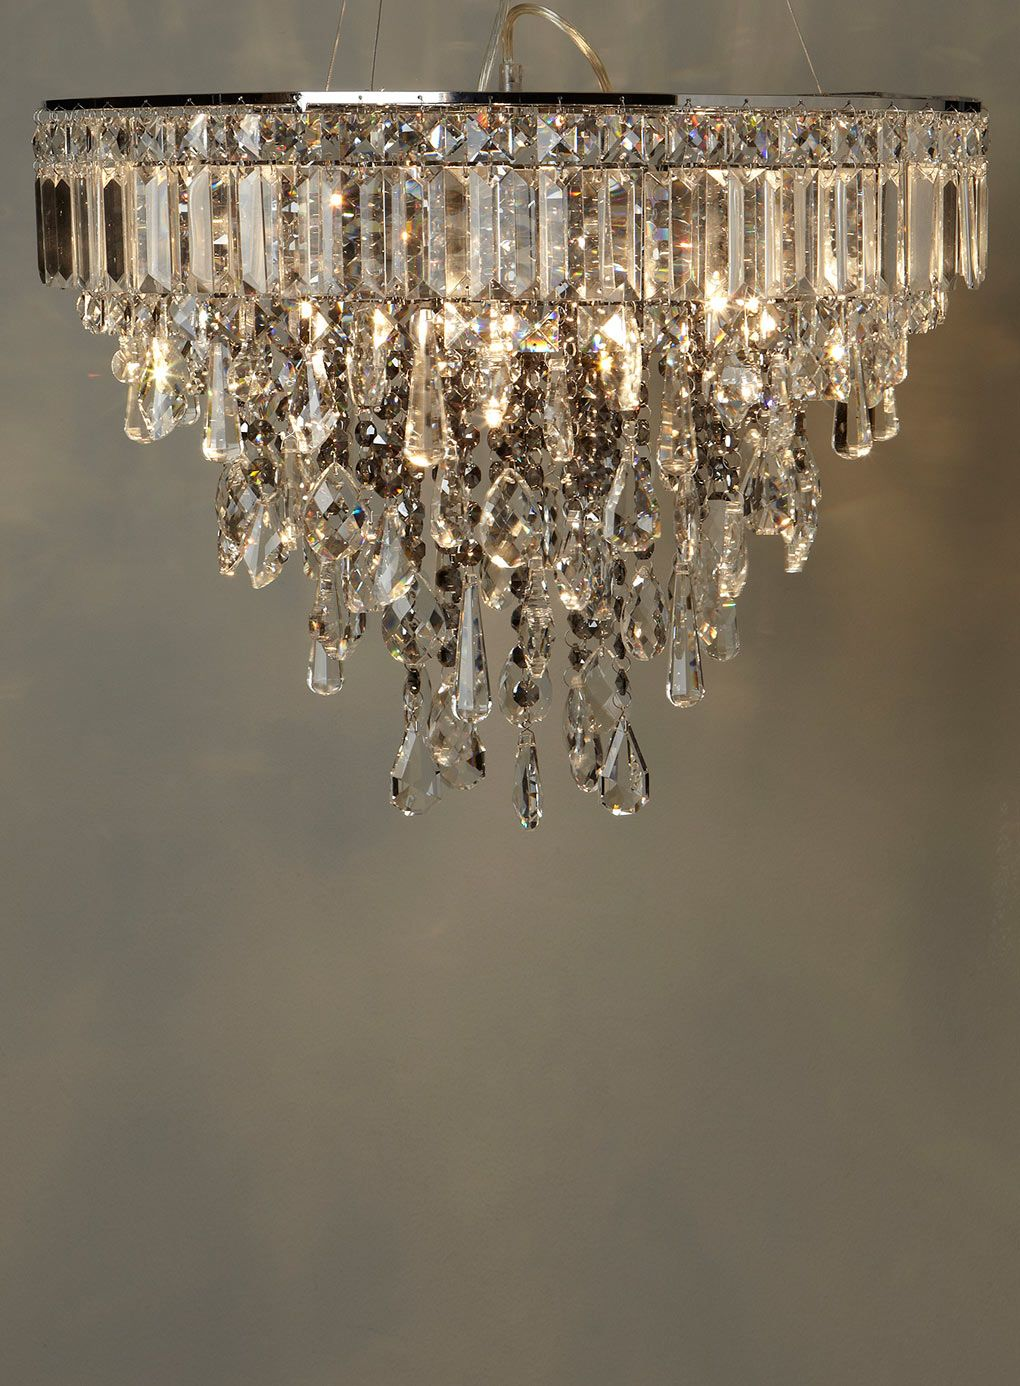 Bathroom Chandeliers Bhs smoke gabriella pendant - on a budget chic, cannot believe from